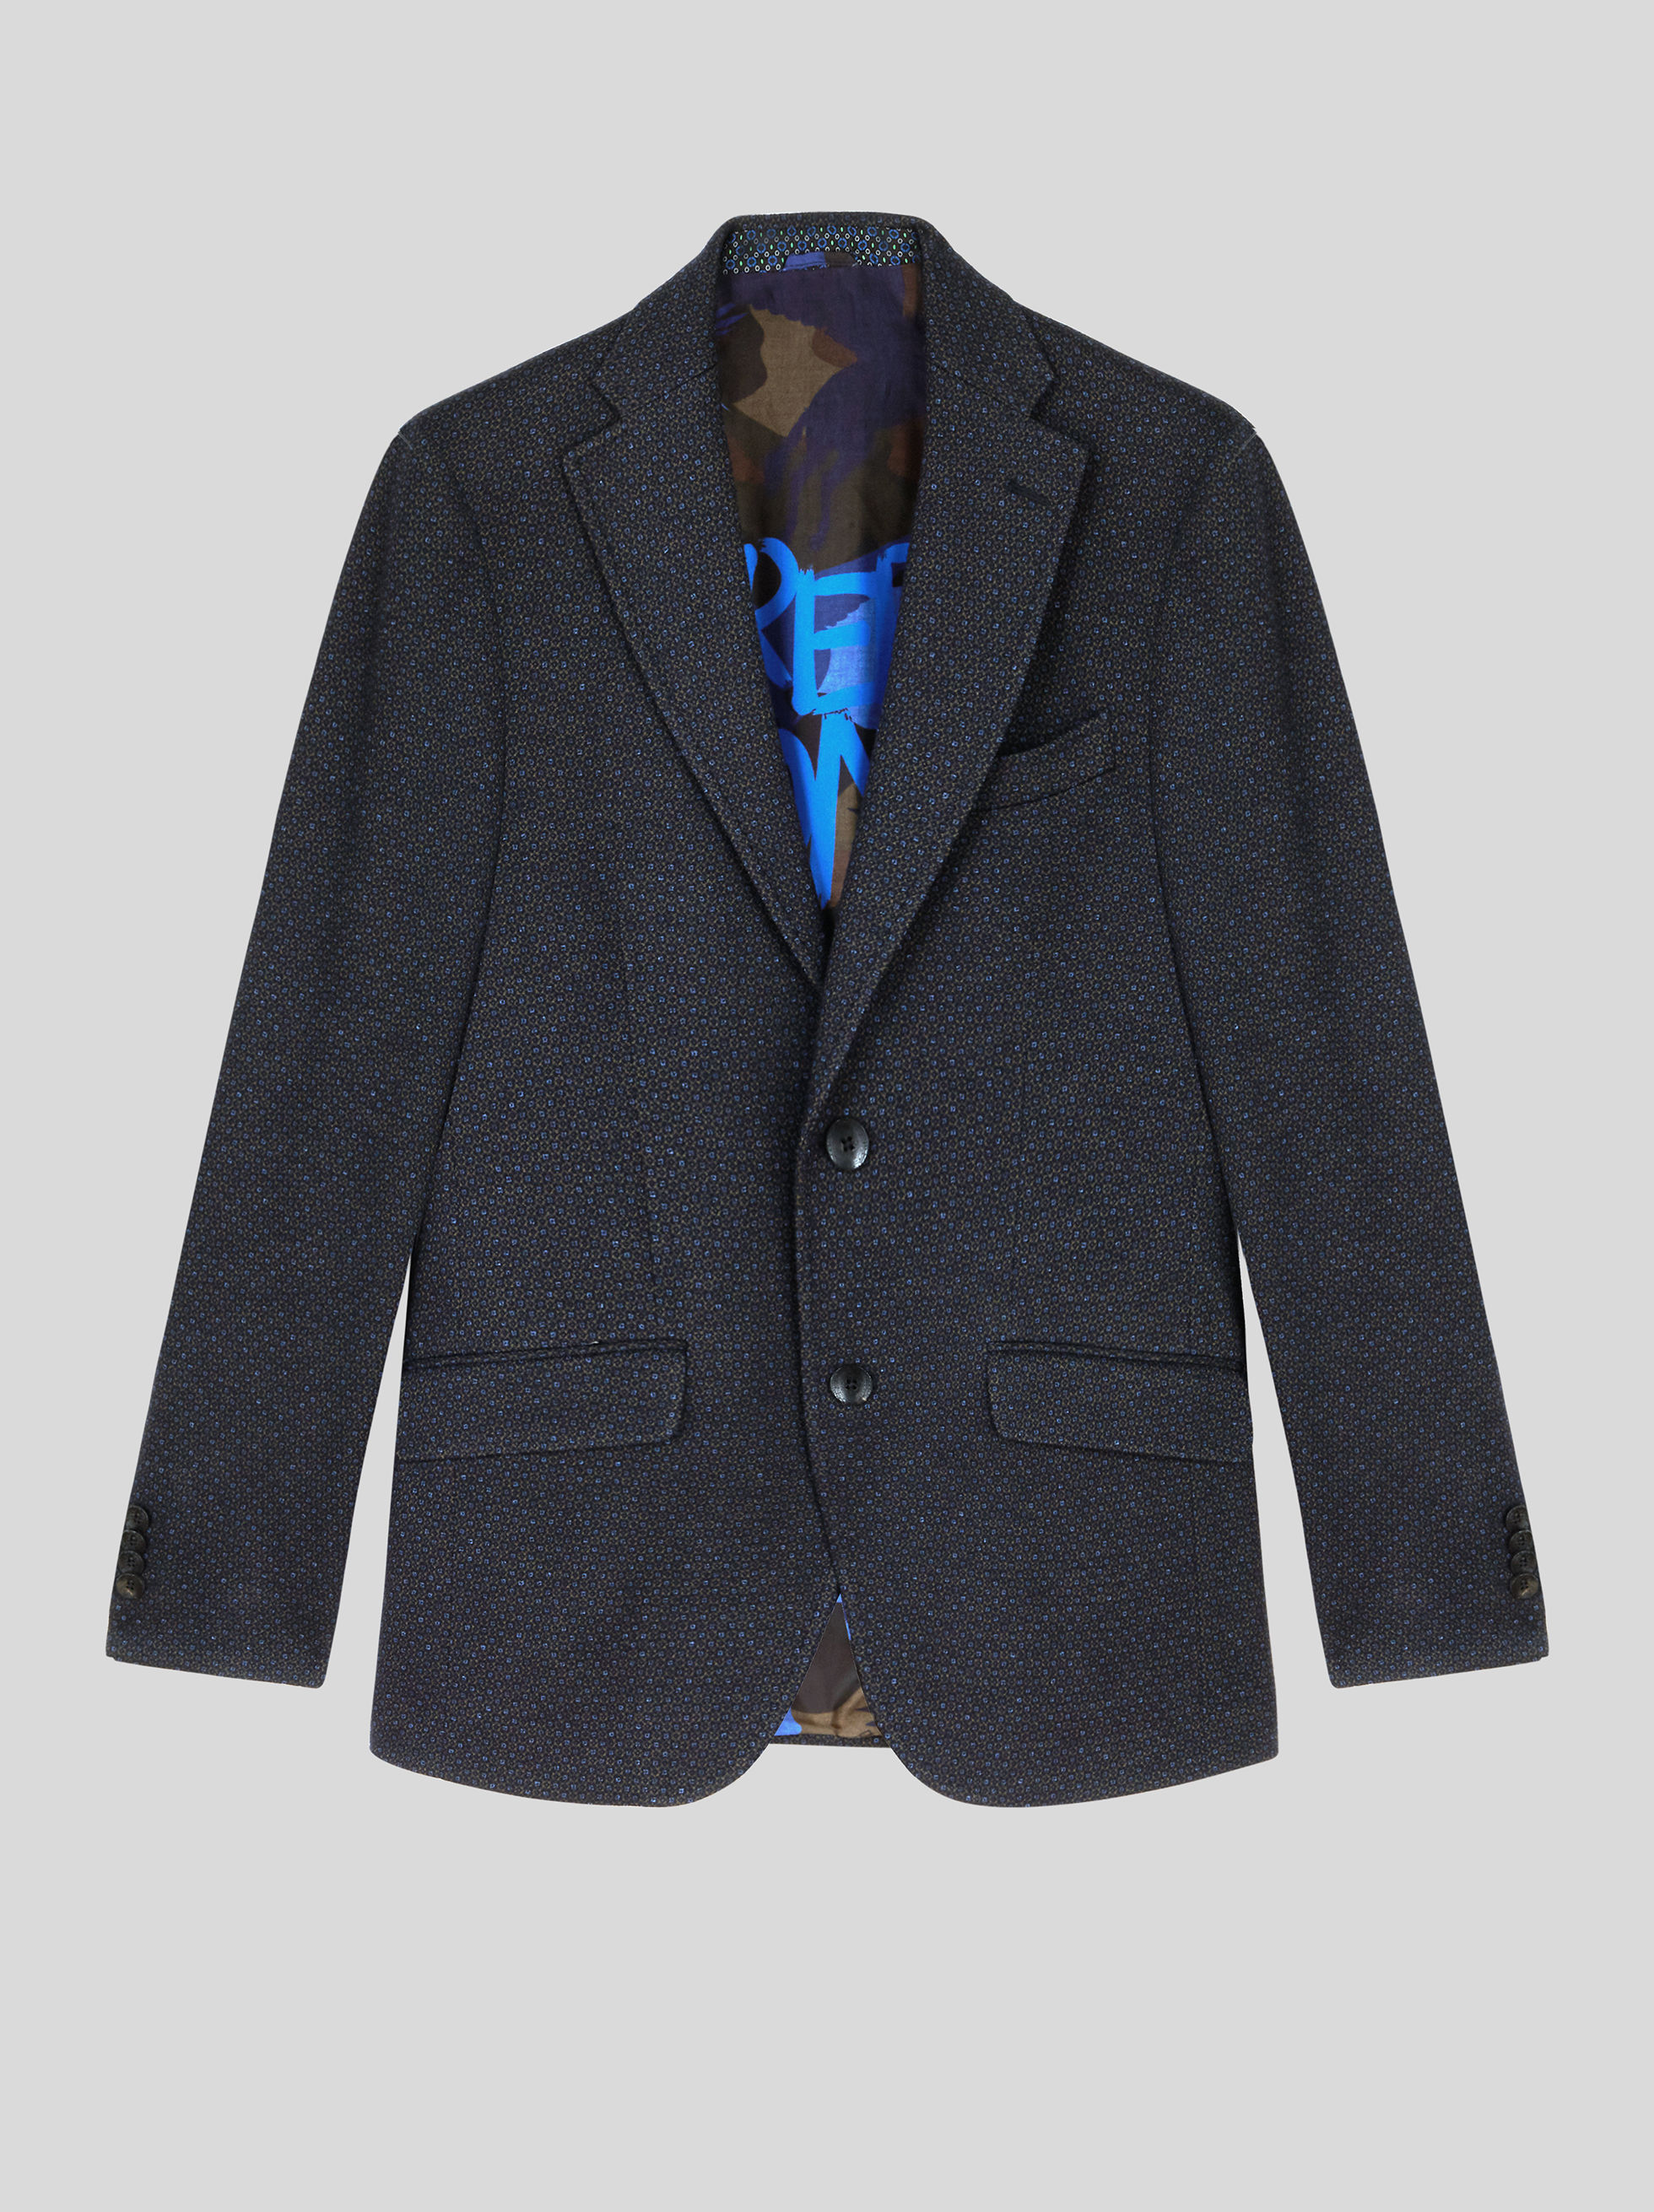 JERSEY JACKET WITH GEOMETRIC PATTERNS